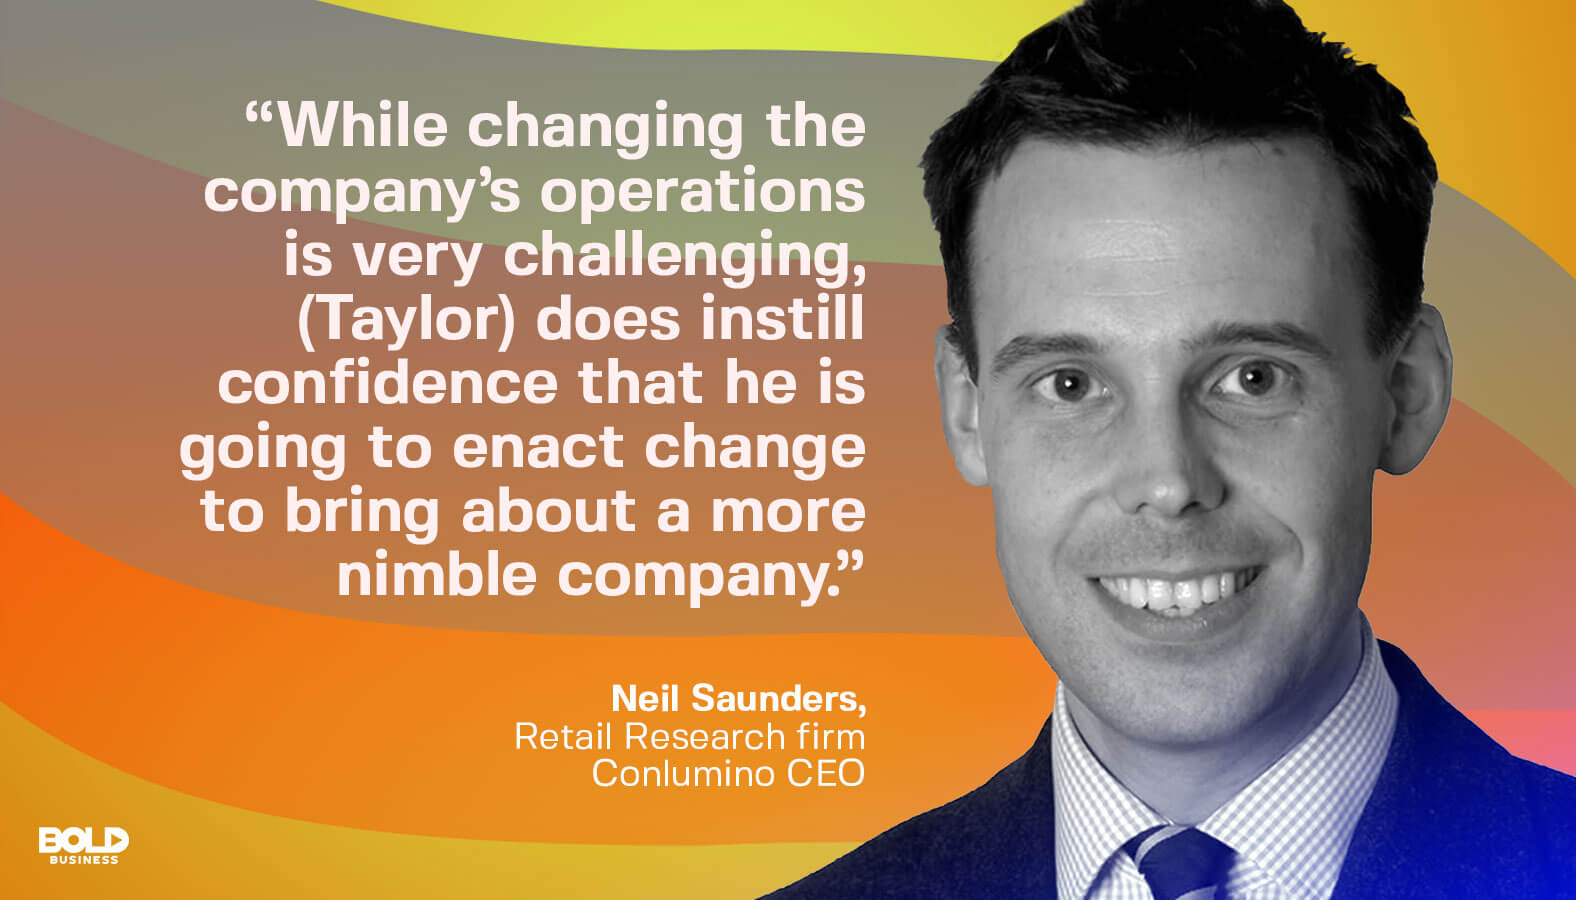 Neil Saunders photo quote on changing company's operations and procter and gamble innovation strategy